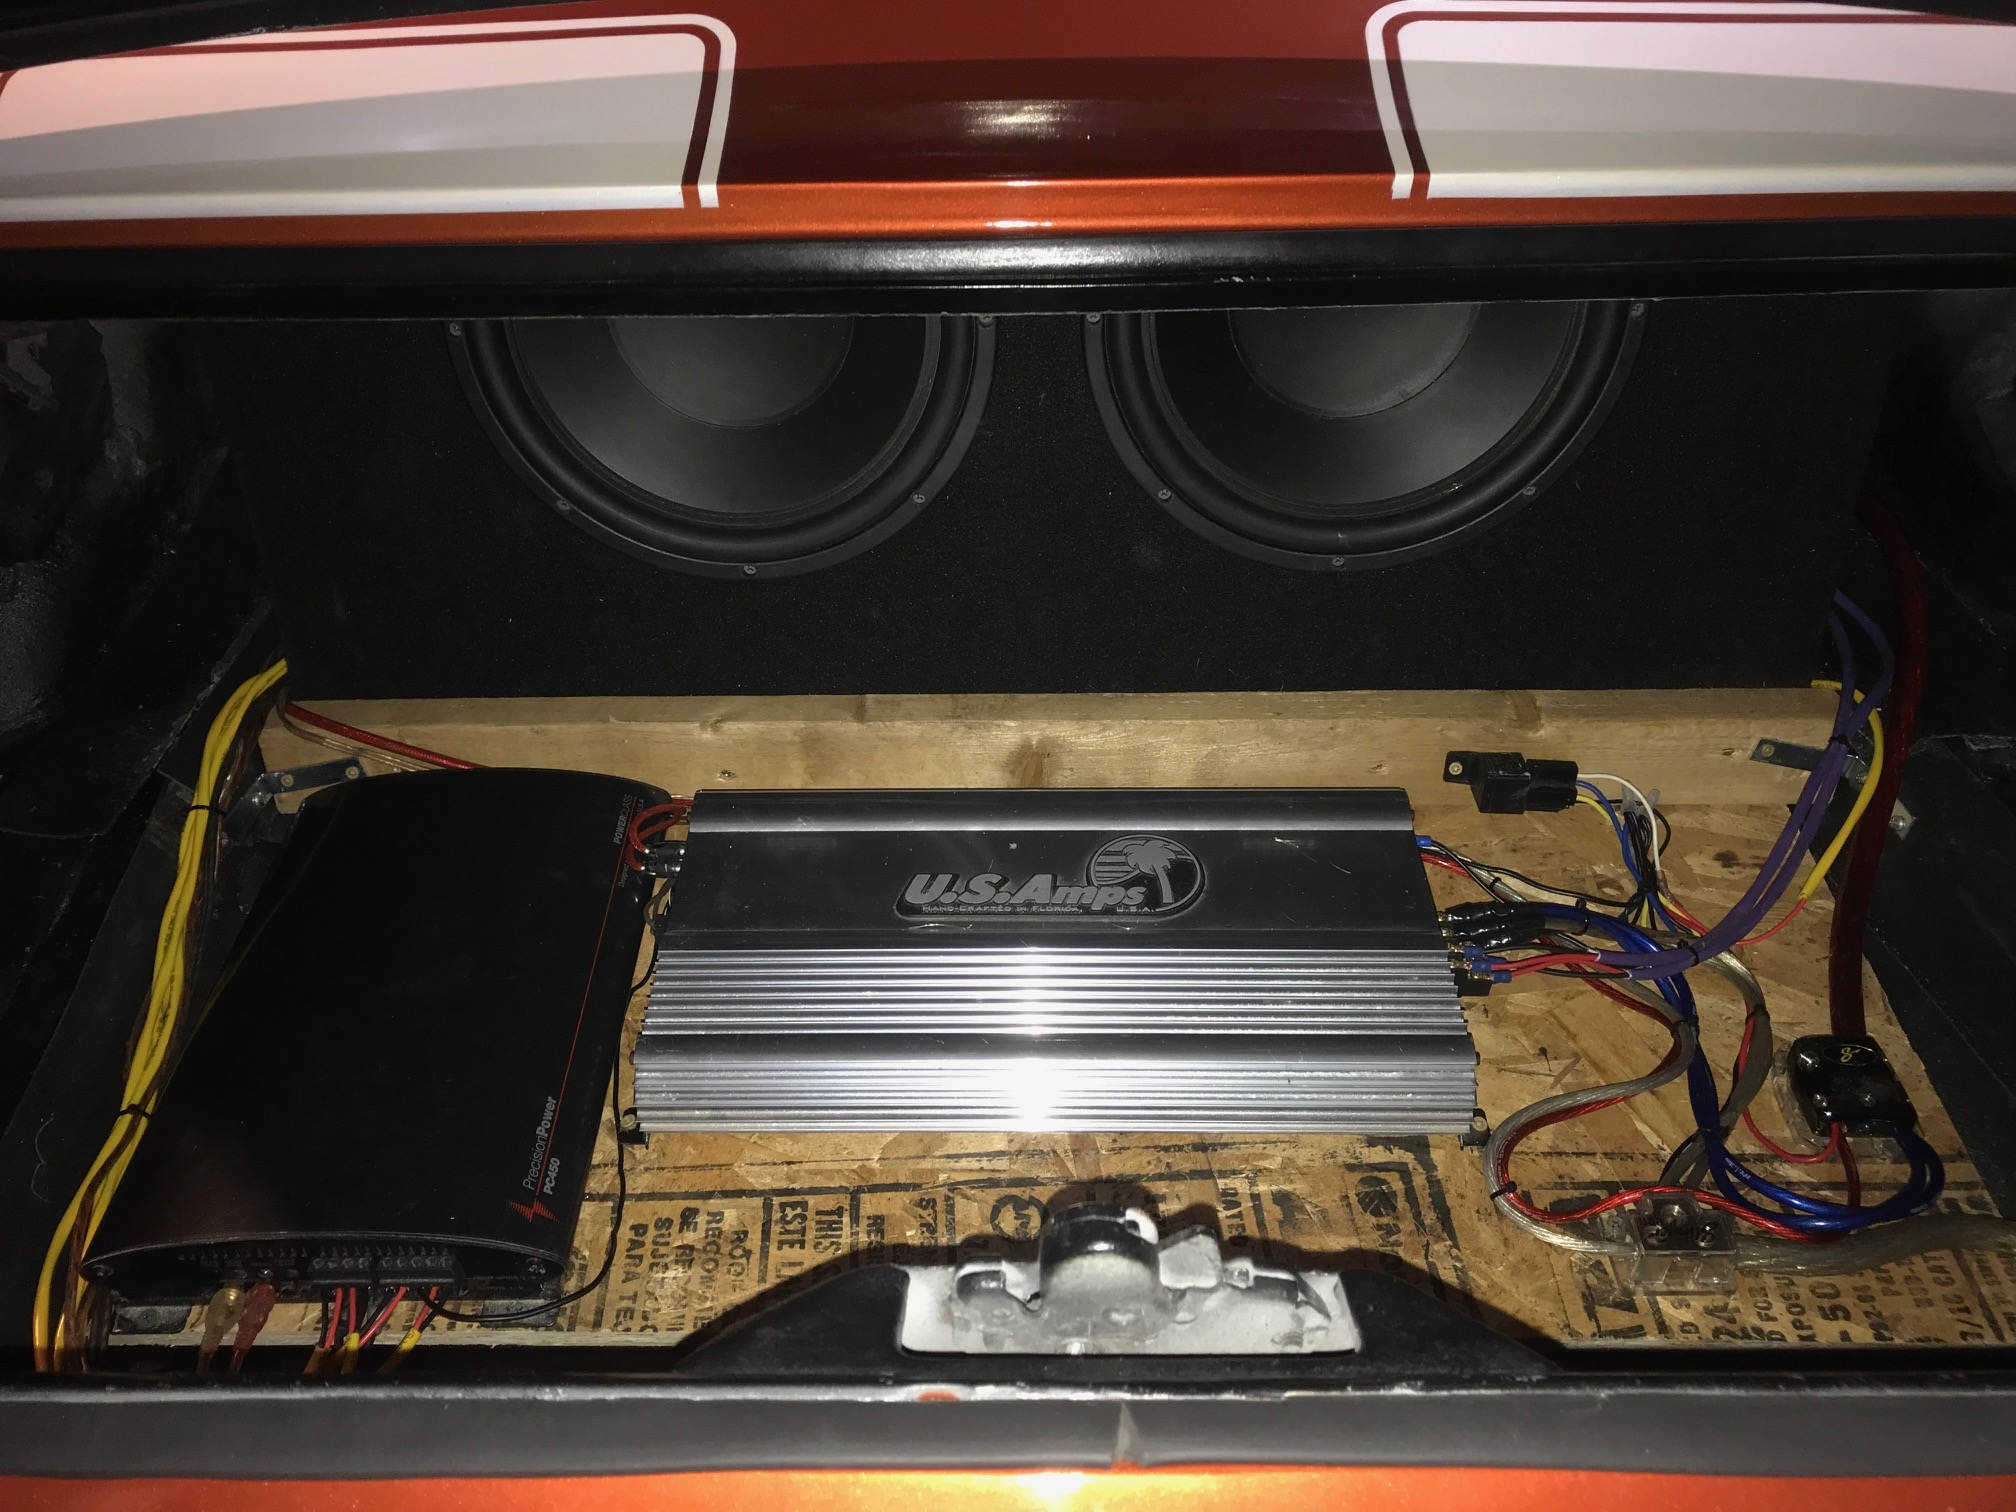 68 Camaro Install Page 4 Mac Diy Sub Wiring Two Amps Got It The Trunk All Buttoned Up I Always Relay My Remote Turn On If There Are Multiple That 1000x Is A Bit Of Hassle As Has